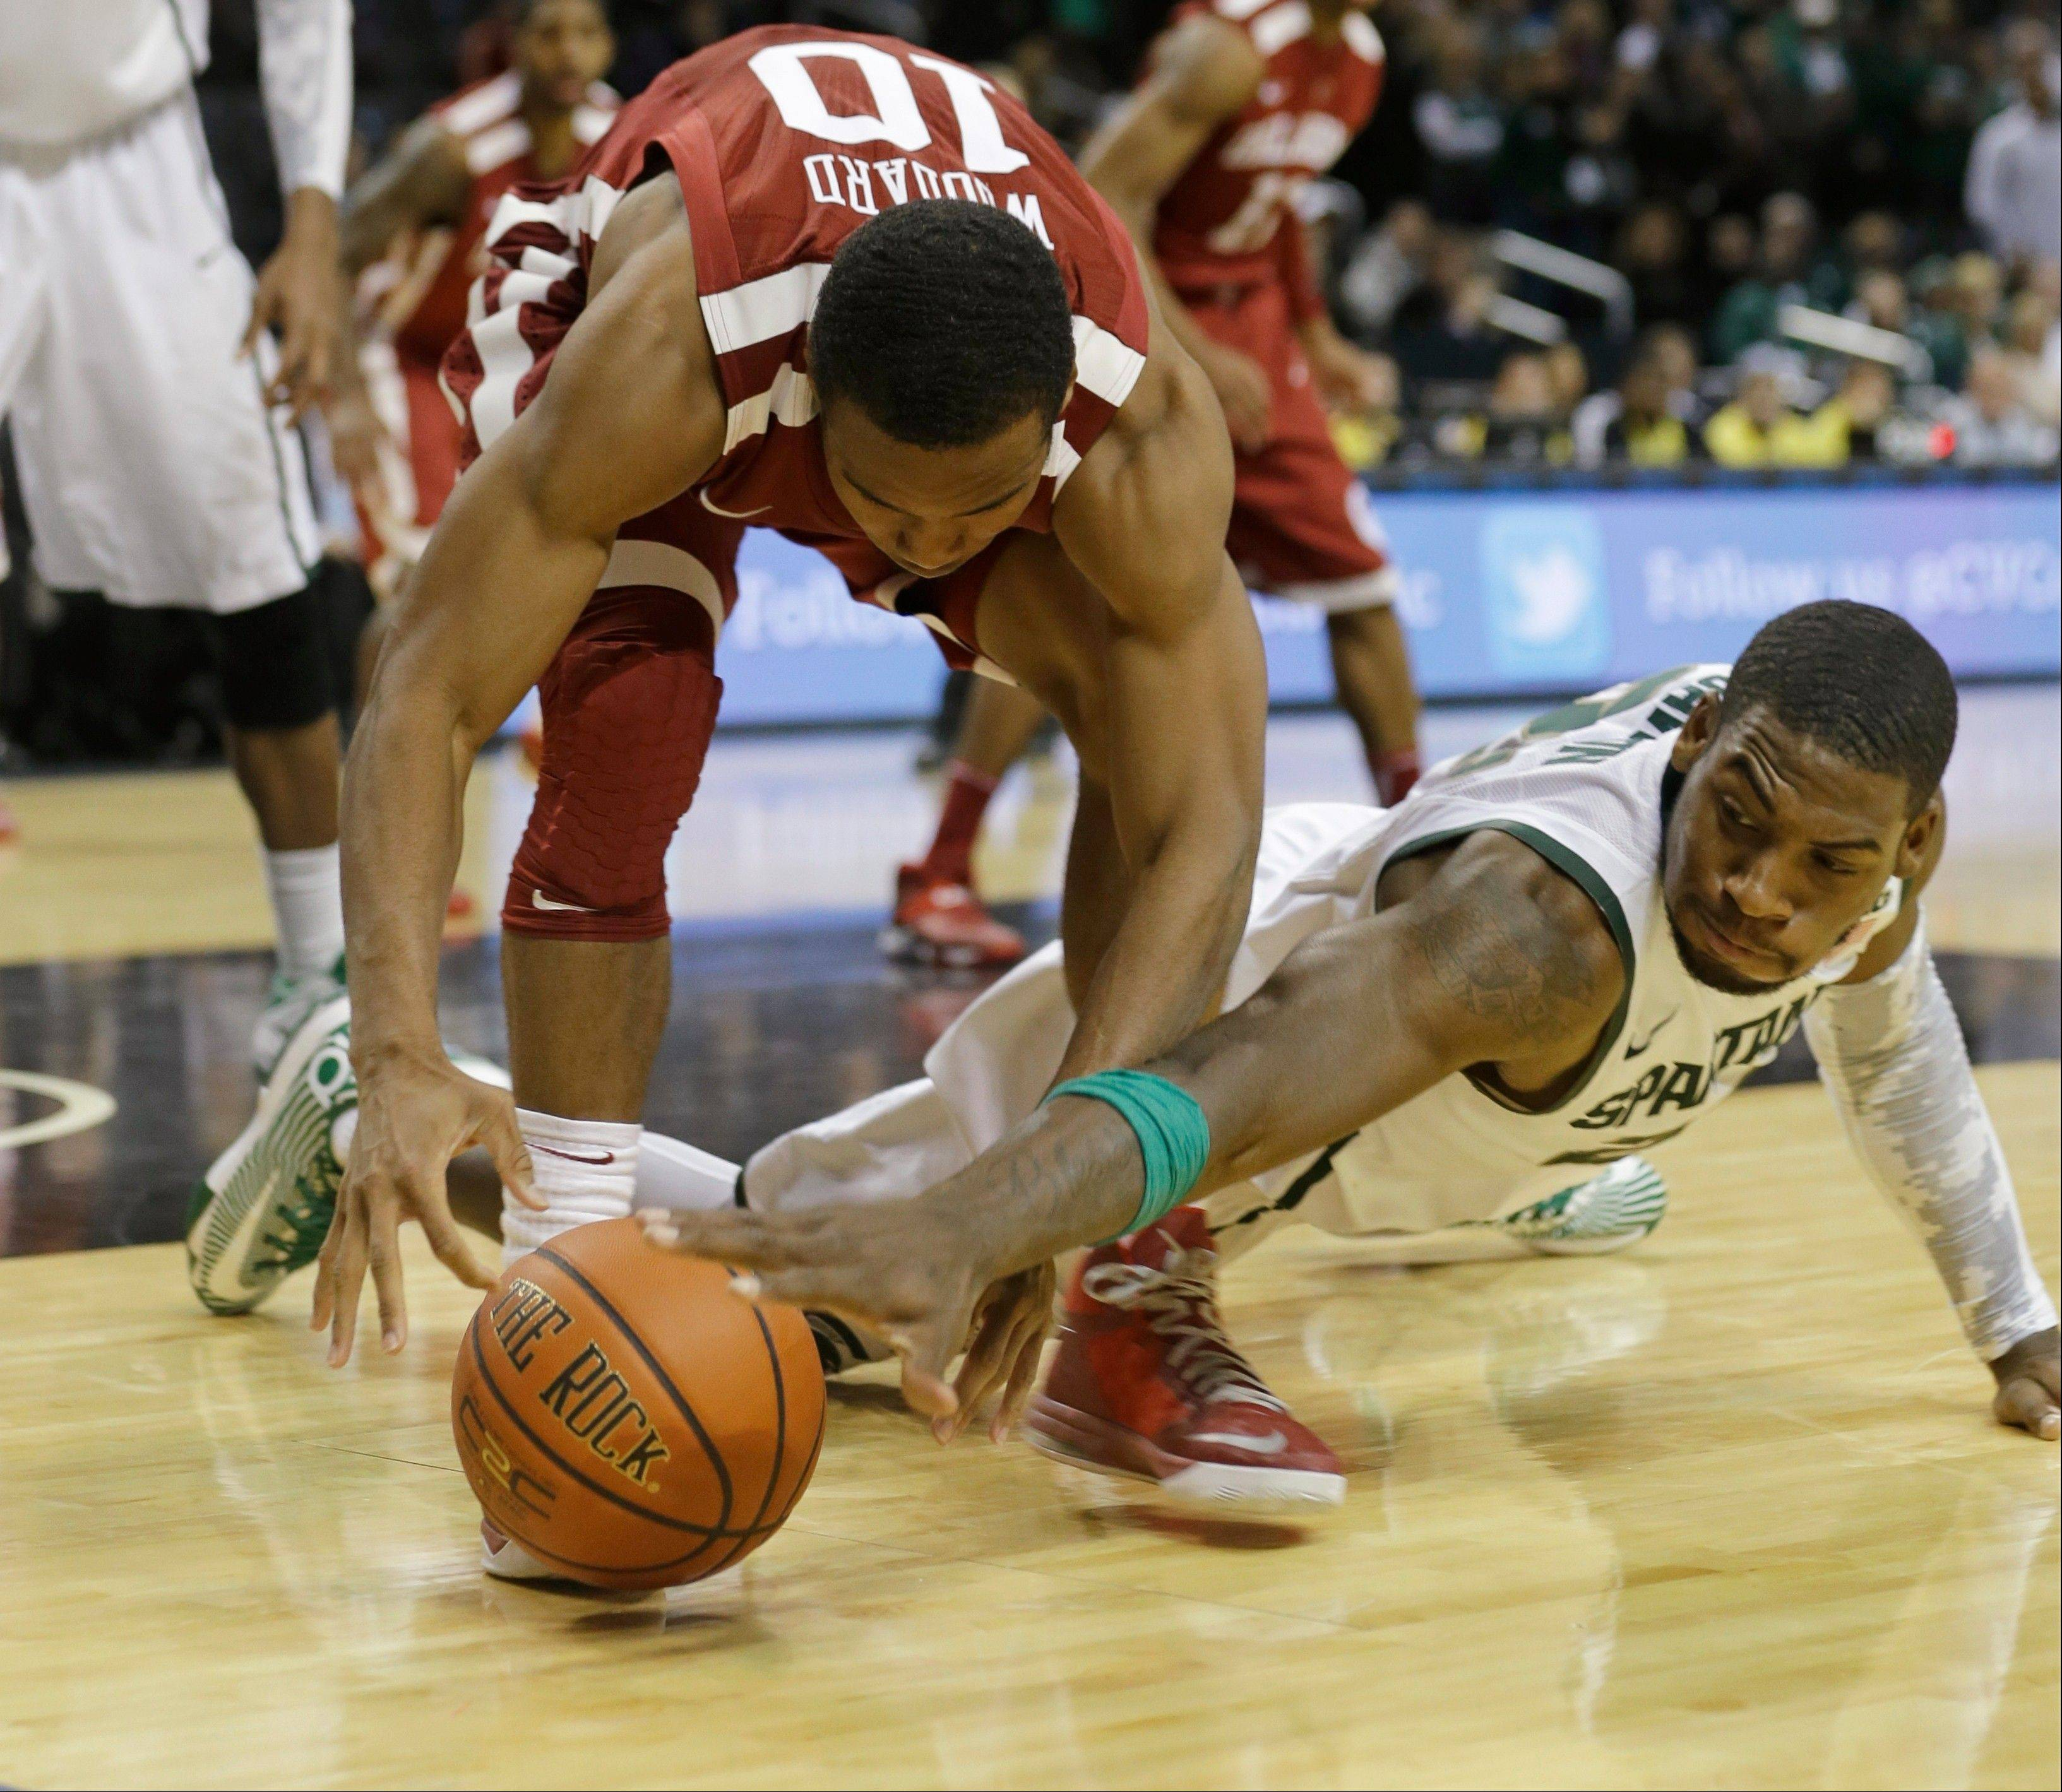 Michigan State's Branden Dawson, right, and Oklahoma's Jordan Woodard fight for control of the ball during the second half of the championship game in the Coaches vs. Cancer Classic on Saturday in New York. Michigan State won 87-76.